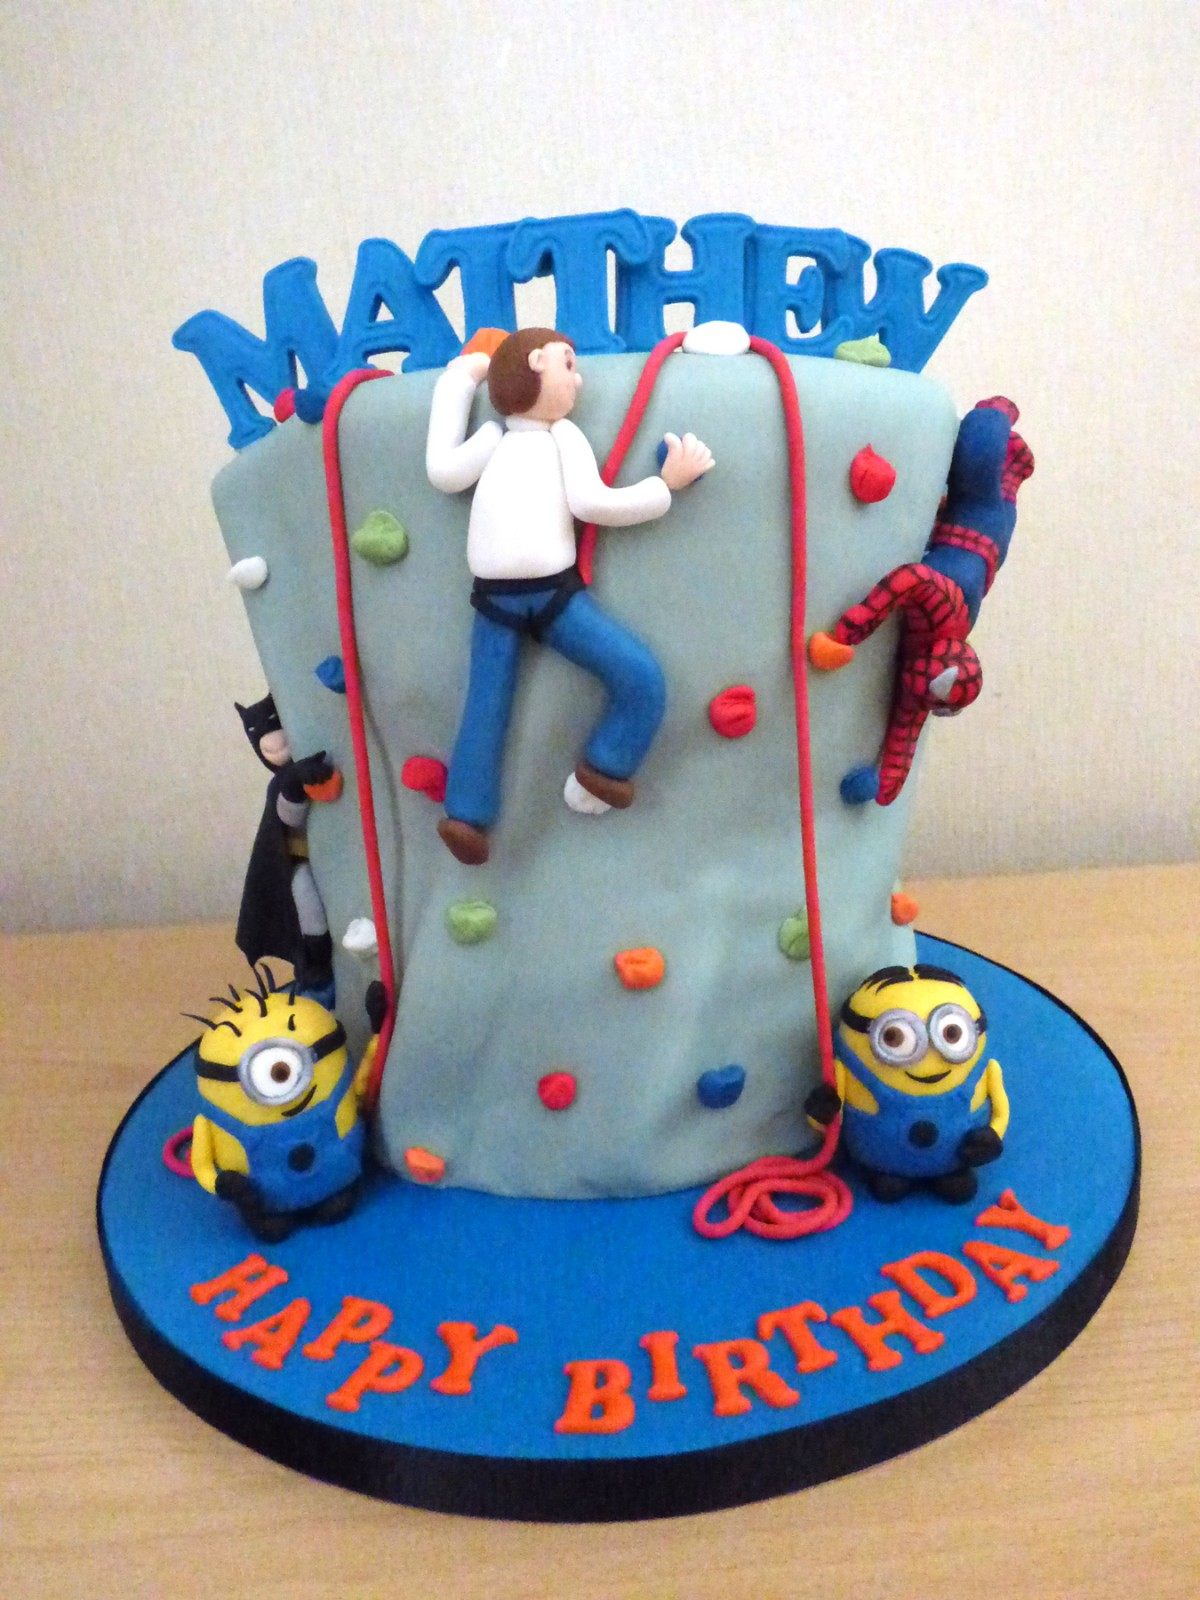 Climbing Wall Cake With Batman Spiderman And Minions Susies Cakes